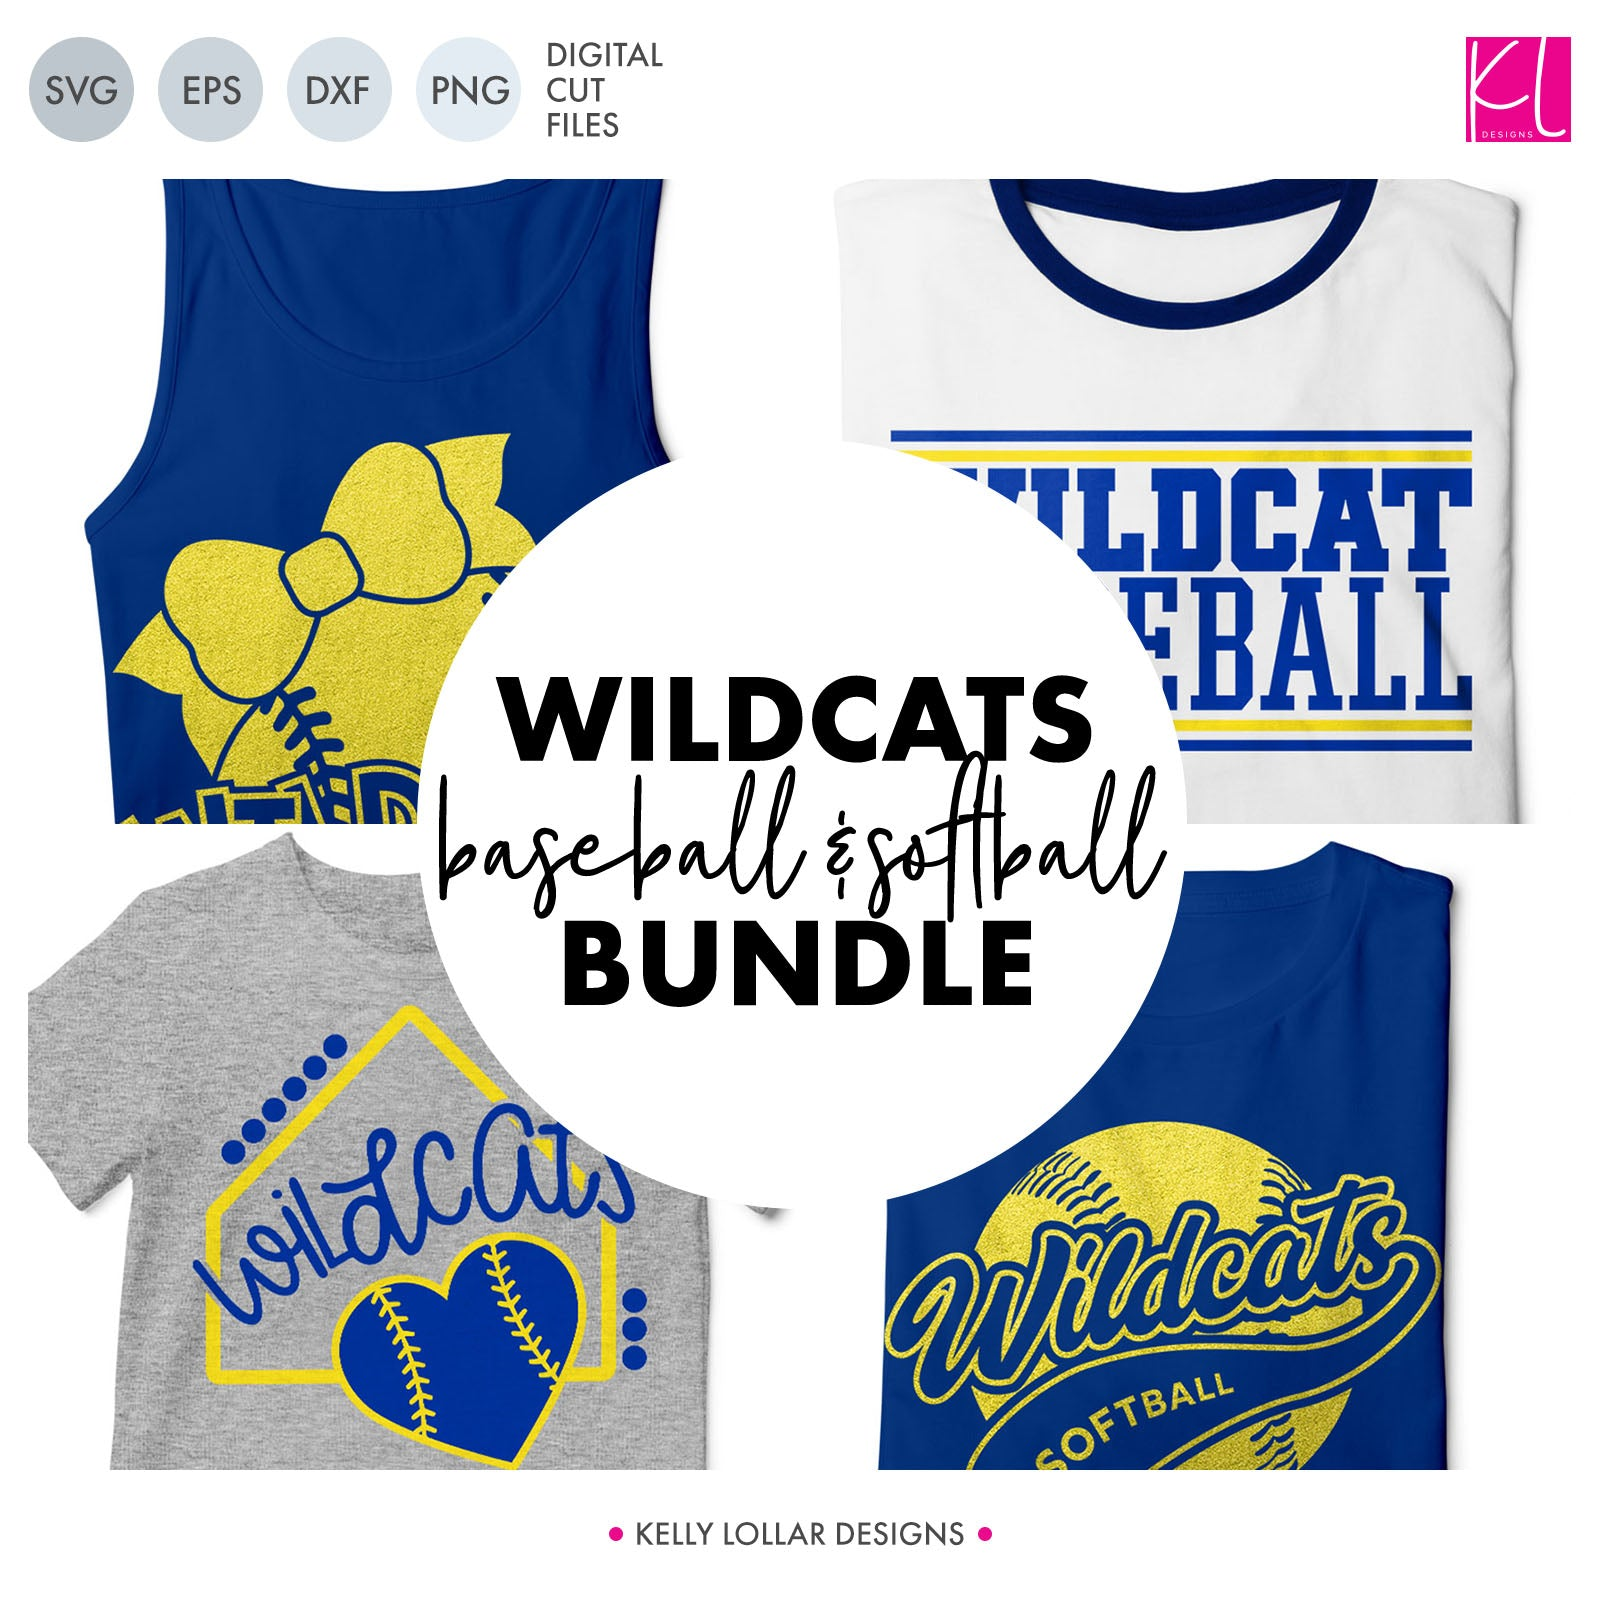 Wildcats Baseball & Softball Bundle | SVG DXF EPS PNG Cut Files